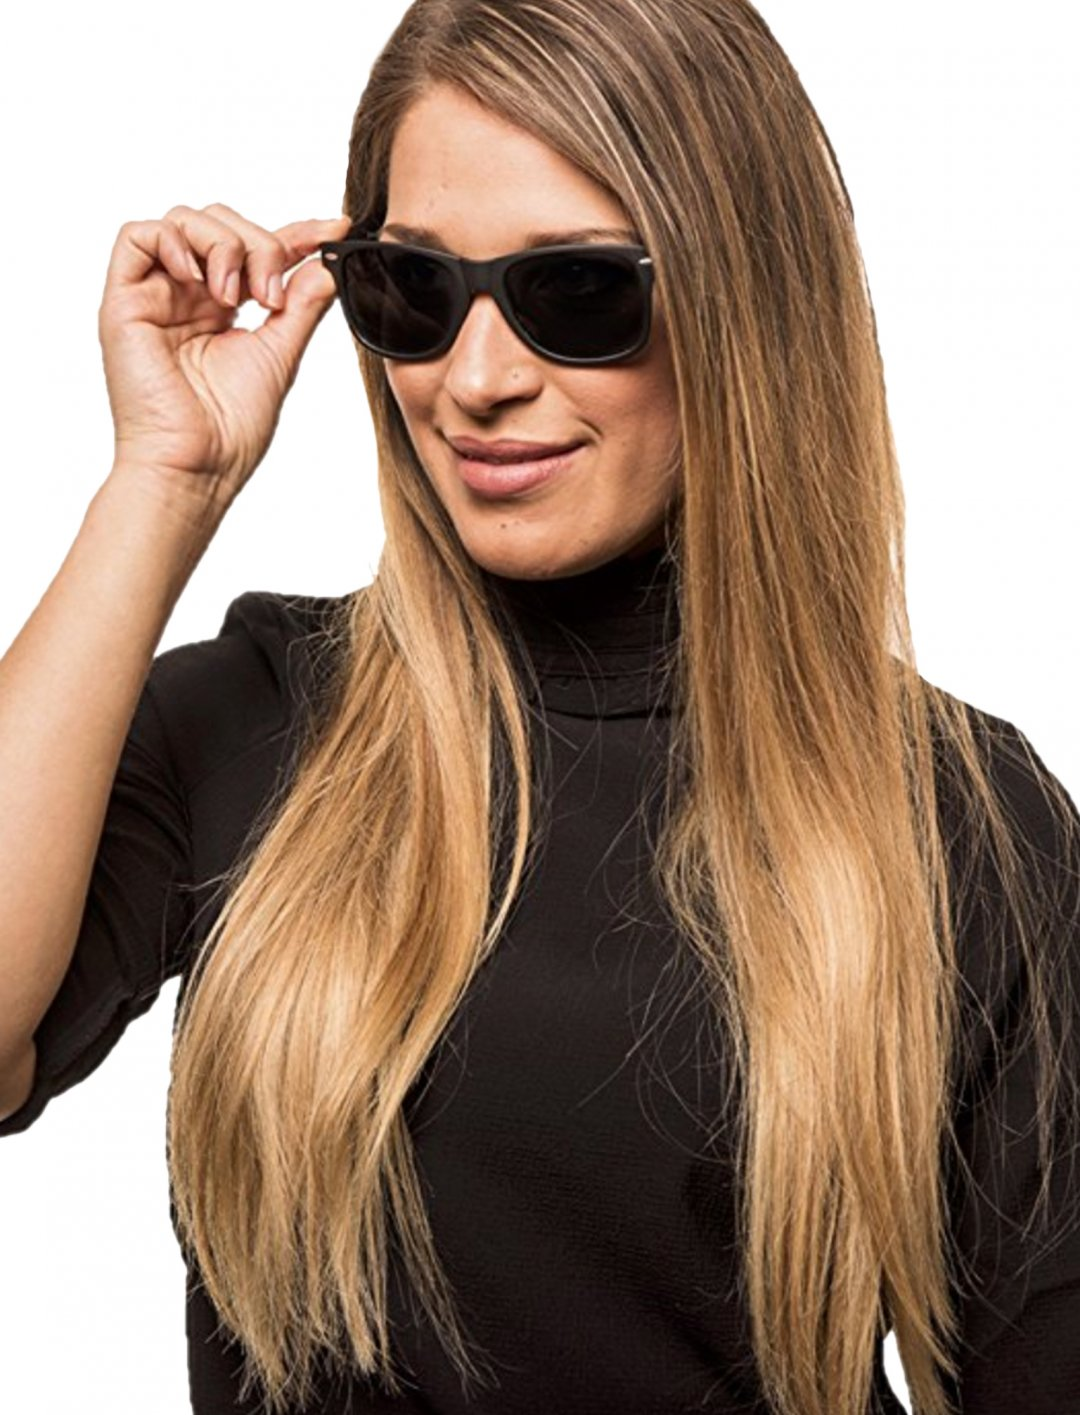 """Balinco Vintage Unisex Sunglasses {""""id"""":16,""""product_section_id"""":1,""""name"""":""""Accessories"""",""""order"""":15} Balinco"""